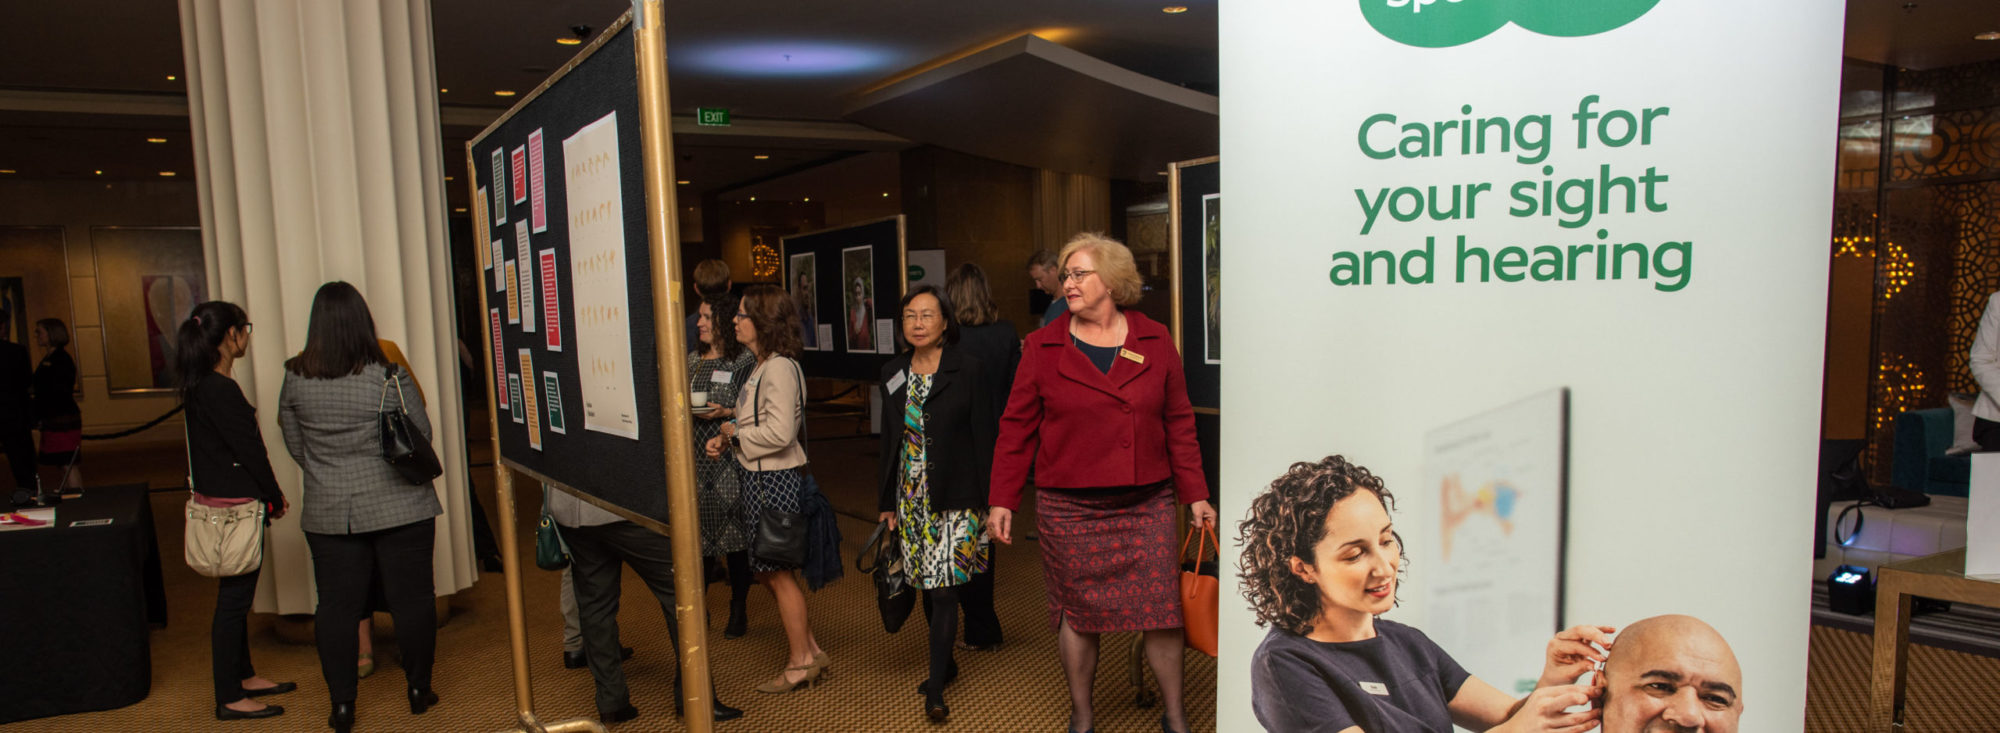 Specsavers' banners on view at HearMe launch event